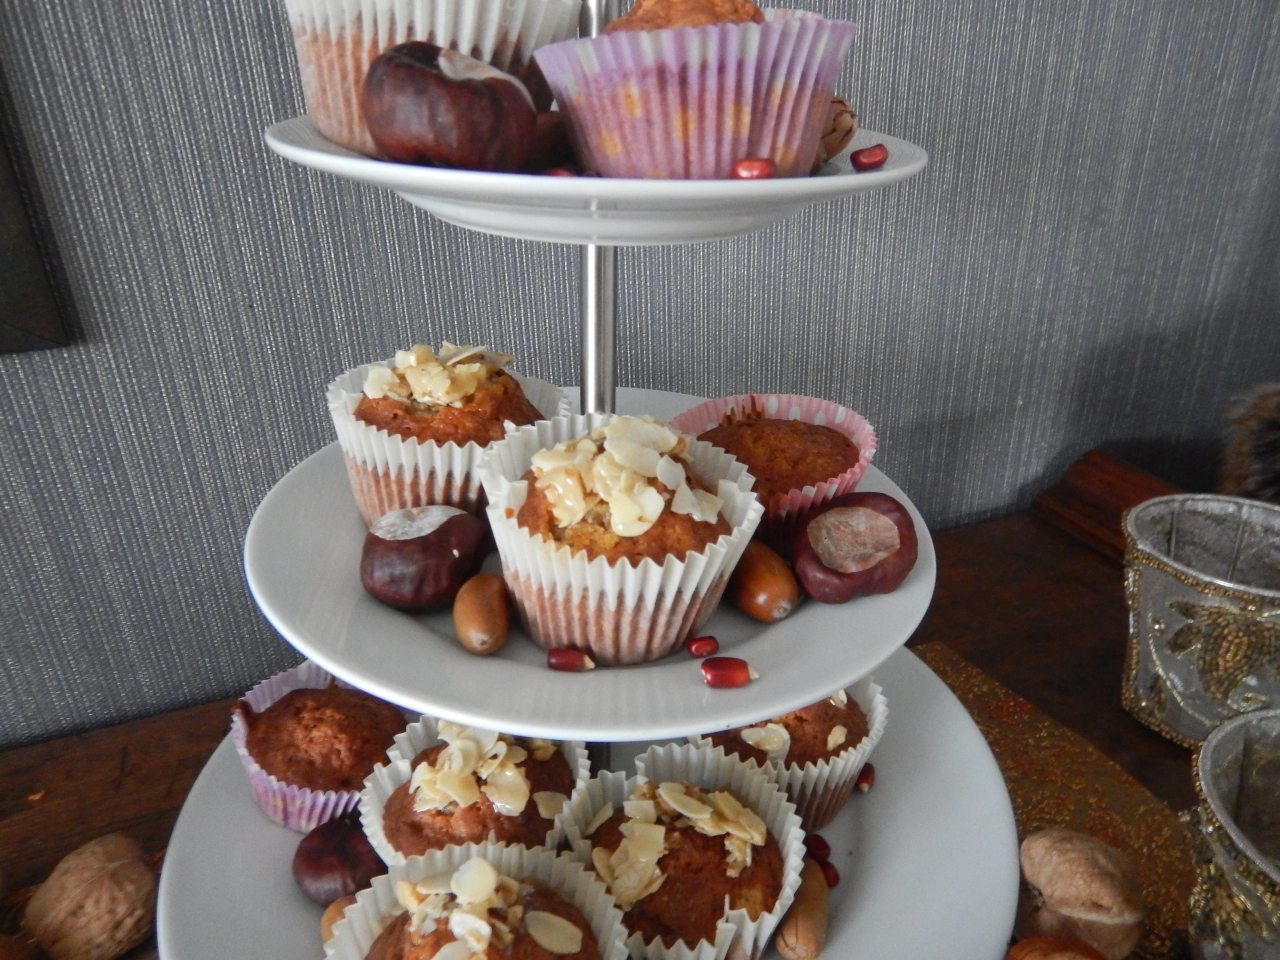 Honey-walnut-almond cupcakes